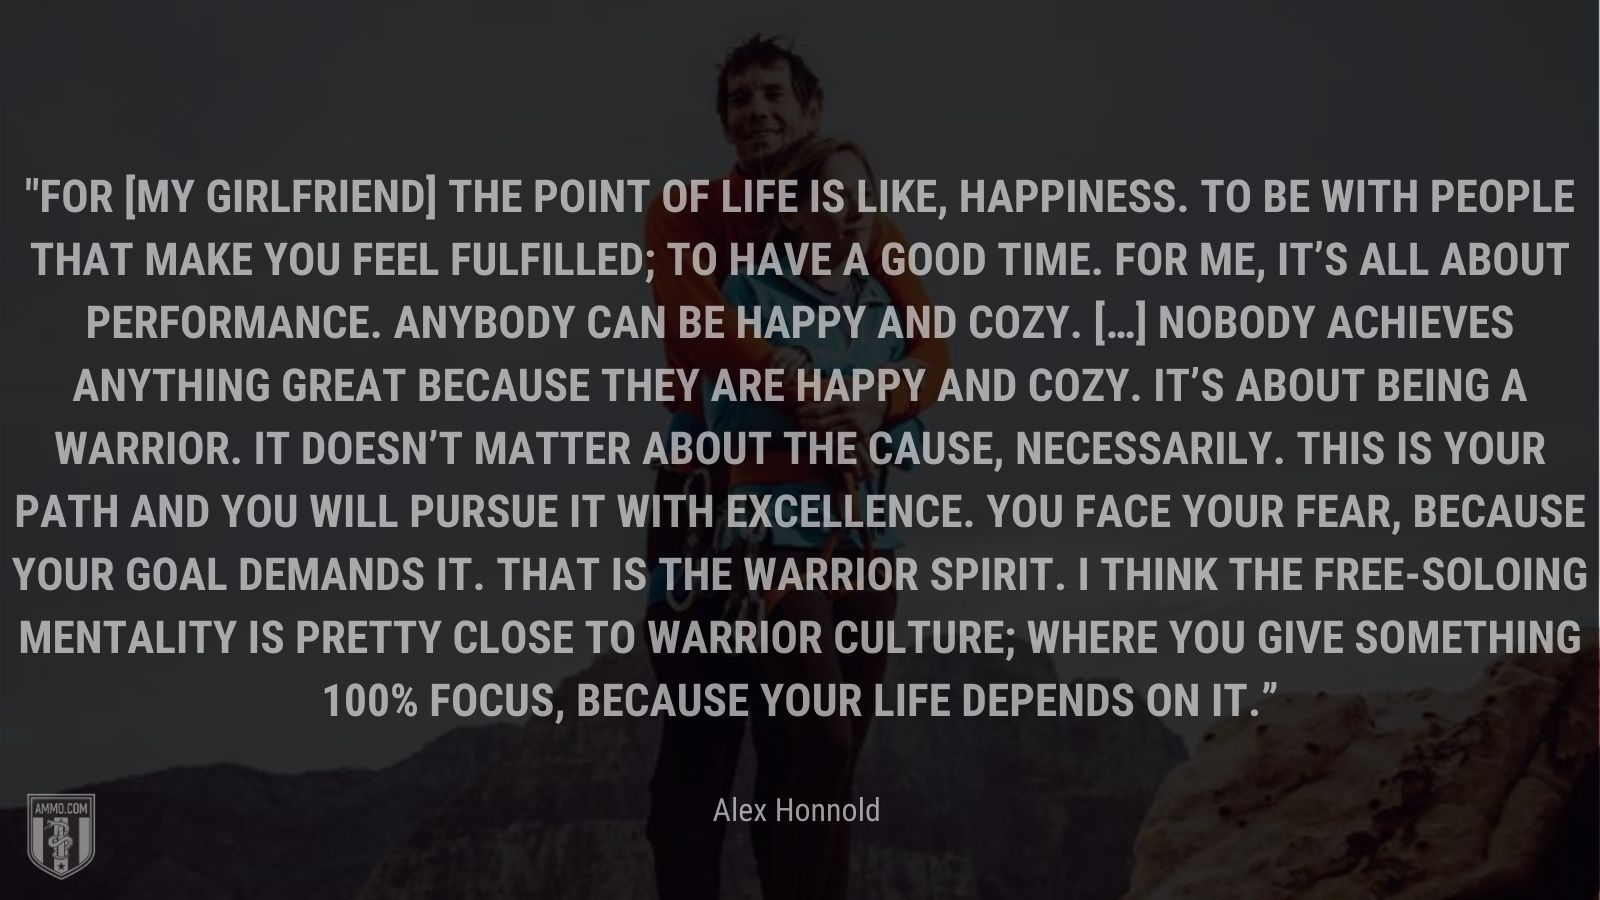 """""""For [my girlfriend] the point of life is like, happiness. To be with people that make you feel fulfilled; to have a good time. For me, it's all about performance. Anybody can be happy and cozy. […] Nobody achieves anything great because they are happy and cozy. It's about being a warrior. It doesn't matter about the cause, necessarily. This is your path and you will pursue it with excellence. You face your fear, because your goal demands it. That is the warrior spirit. I think the free-soloing mentality is pretty close to warrior culture; where you give something 100% focus, because your life depends on it."""" - Alex Honnold"""